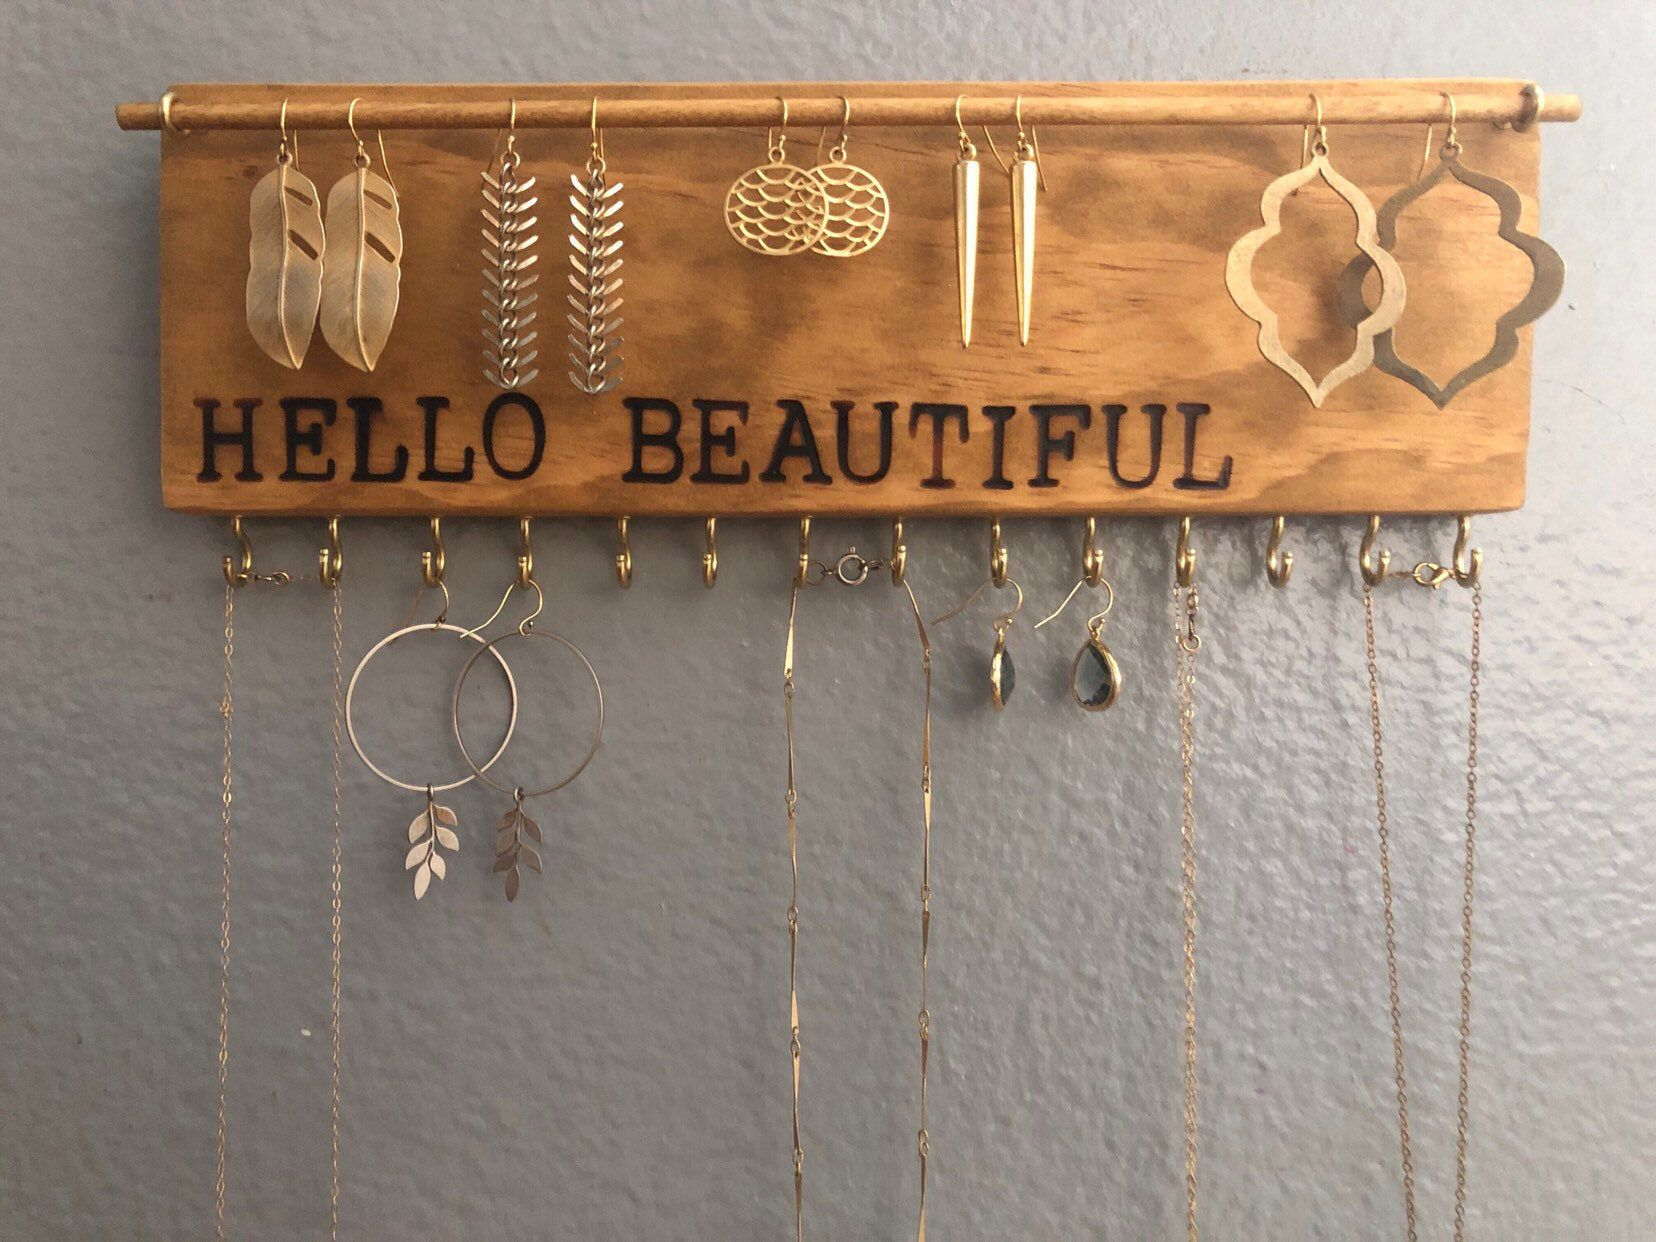 Jewelry Organizer, Mothers Day Gift, Jewelry Organizers, Jewelry Storage, Earring Holder, Necklace Holder, Jewelry Display, Gift for Her